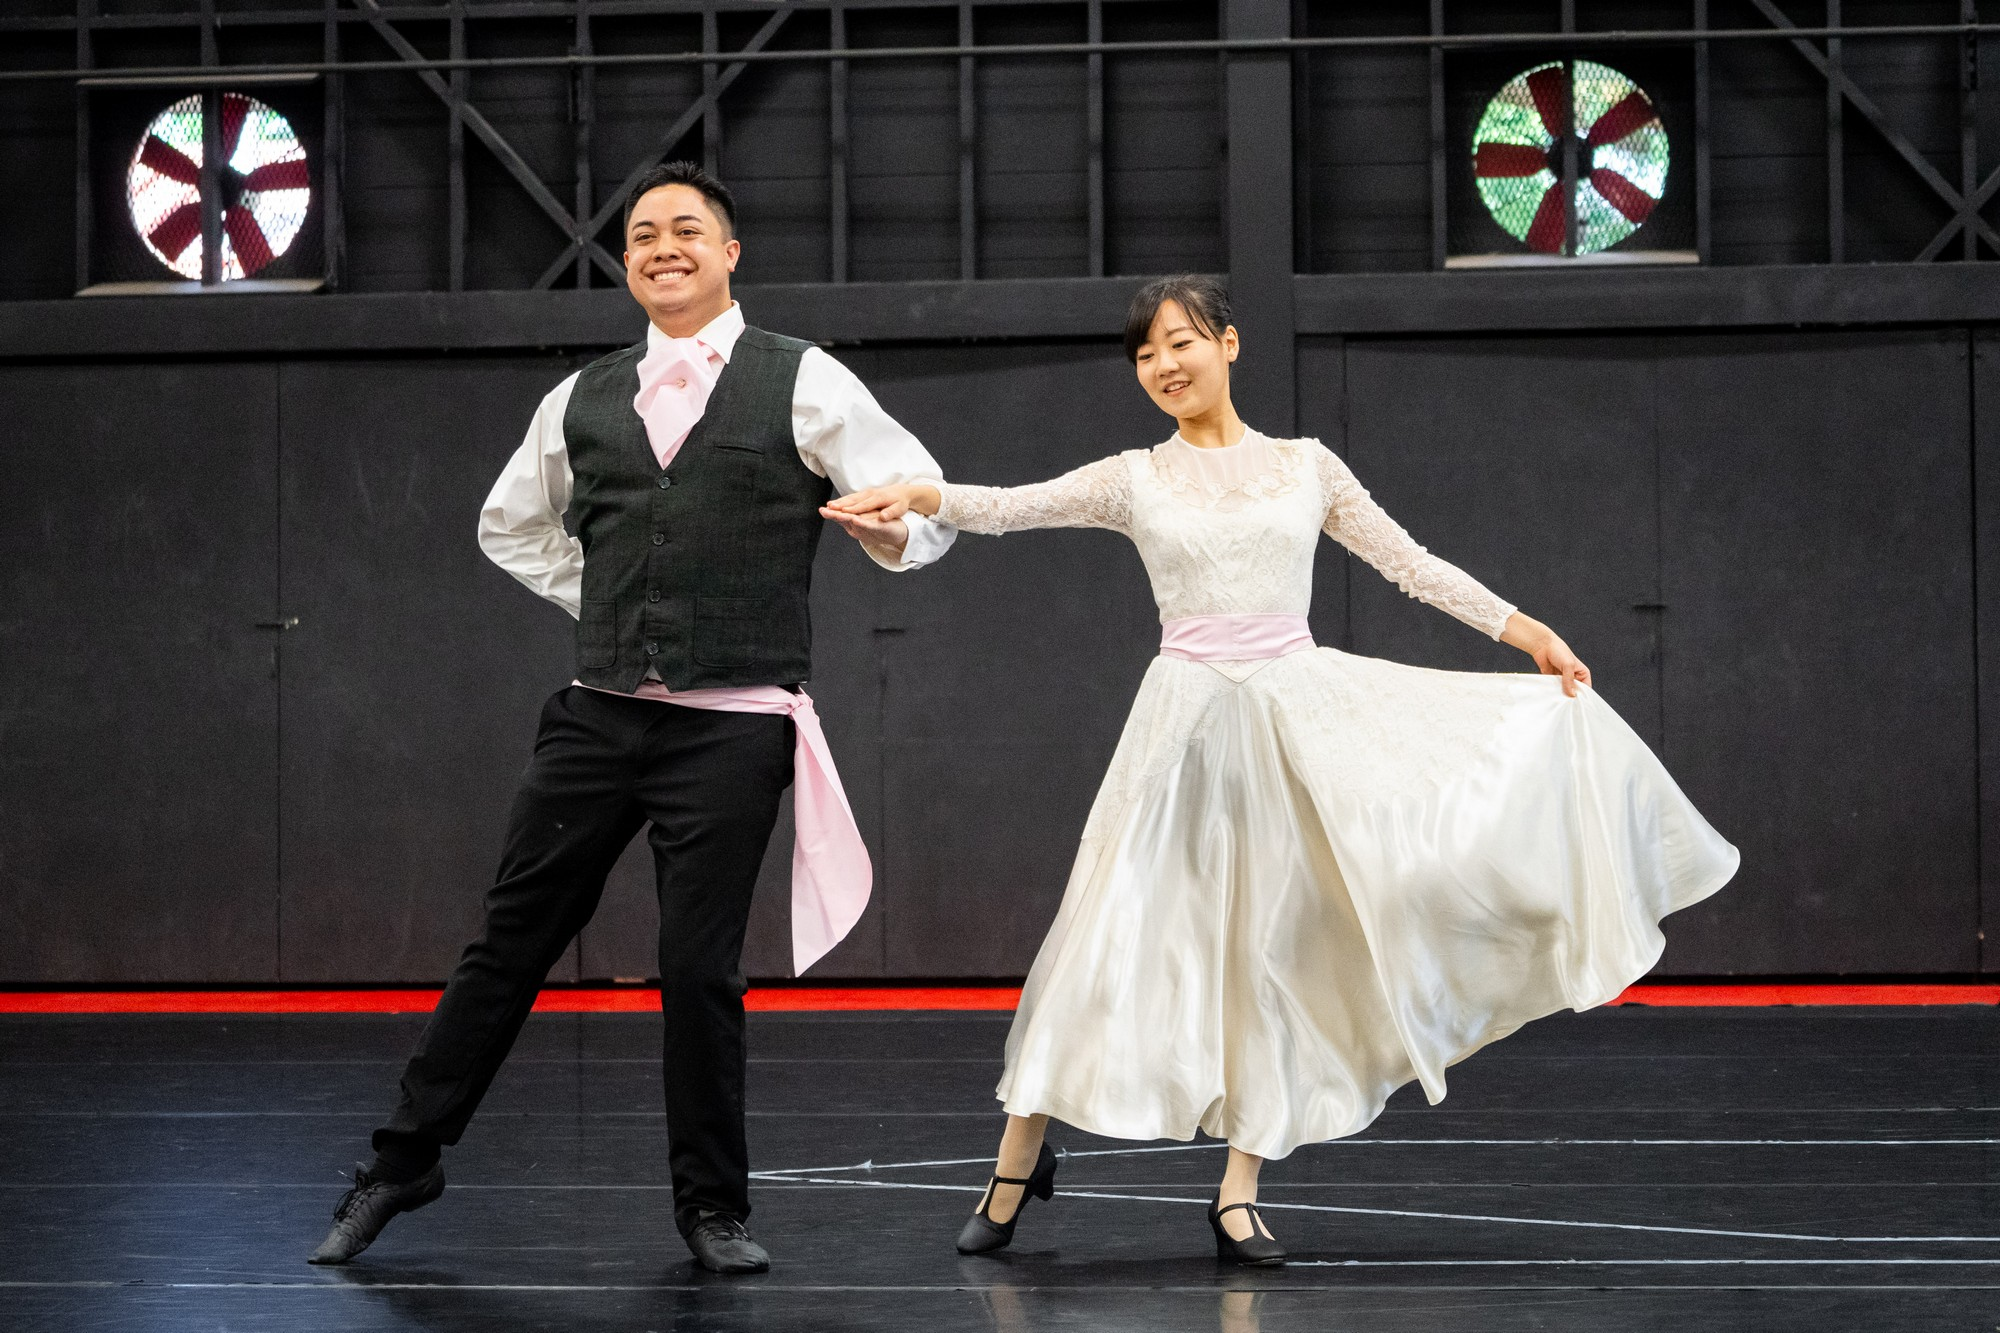 Couple in formal wear in ballet pose with right feet pointed to the right.